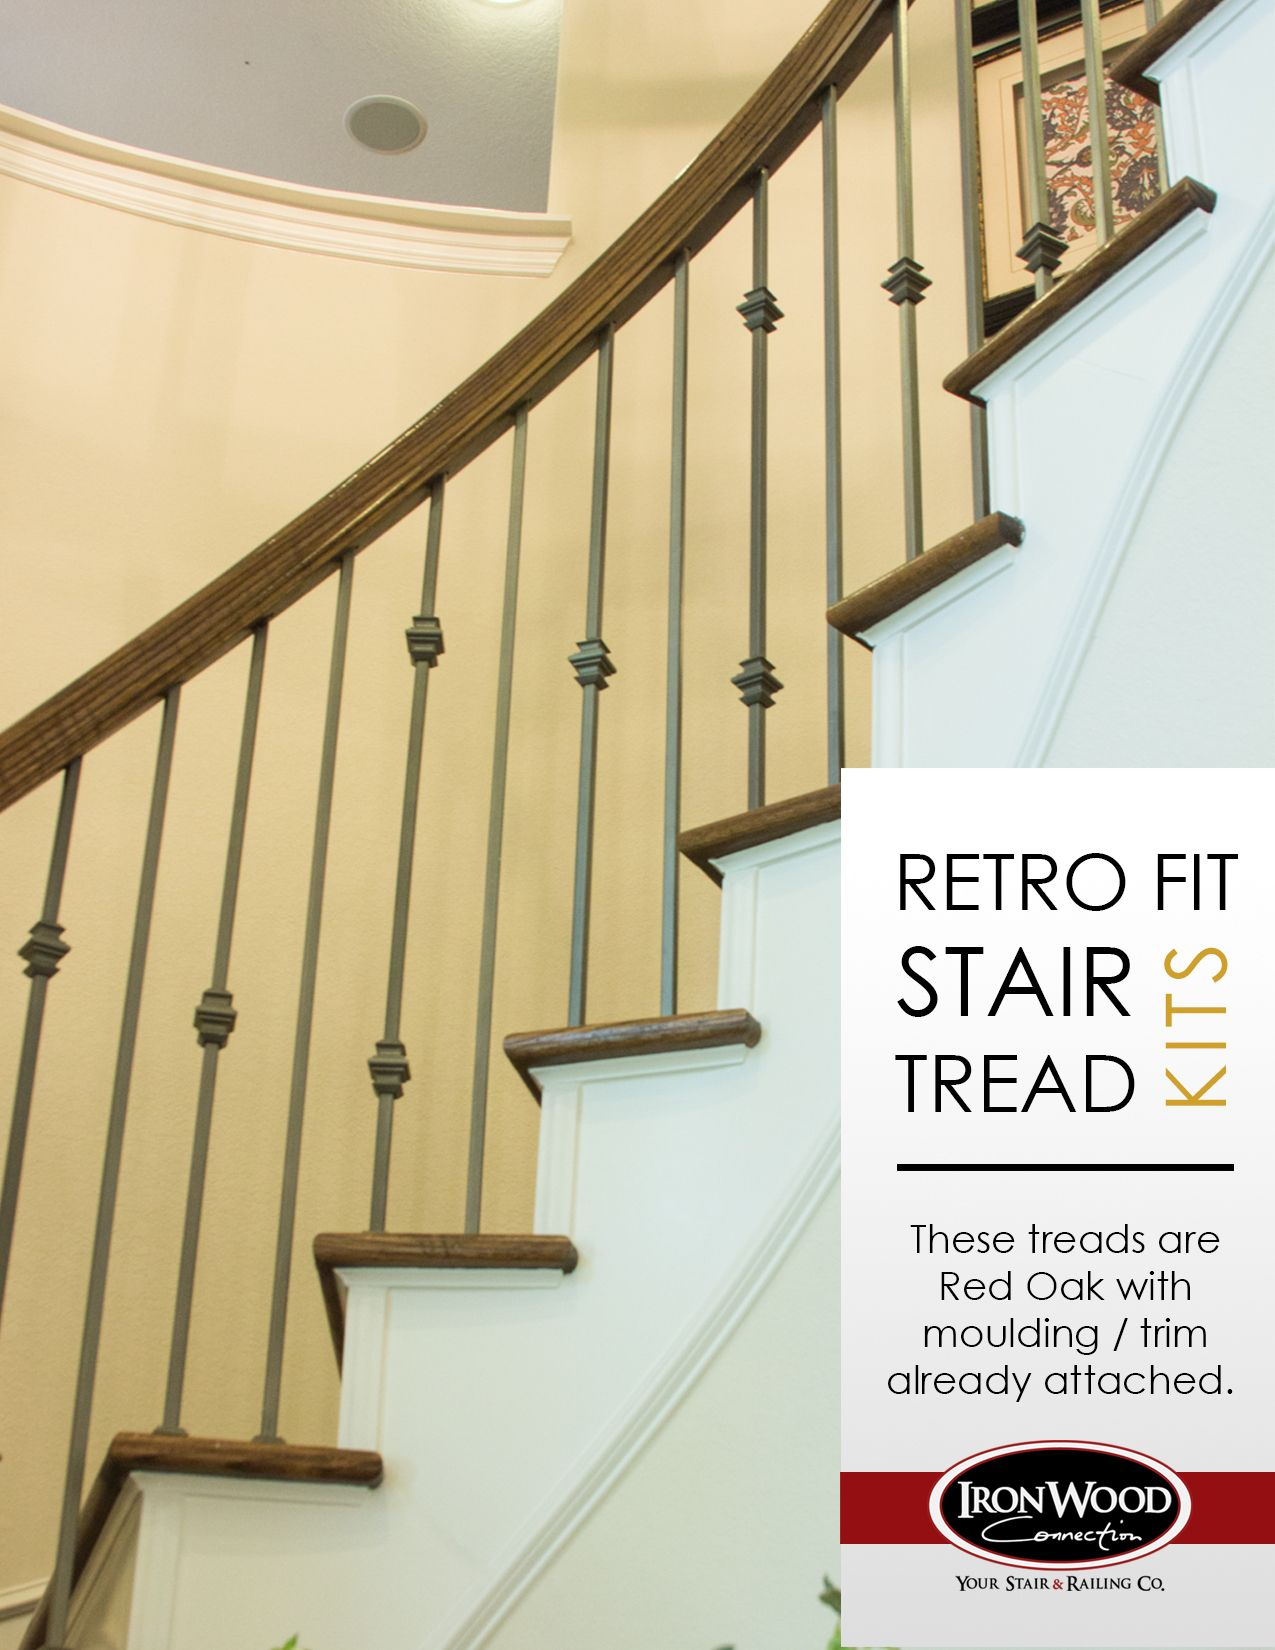 RetroFit Stair Treads Are Used When You Are Removing Carpet From Your  Stairs And Want To